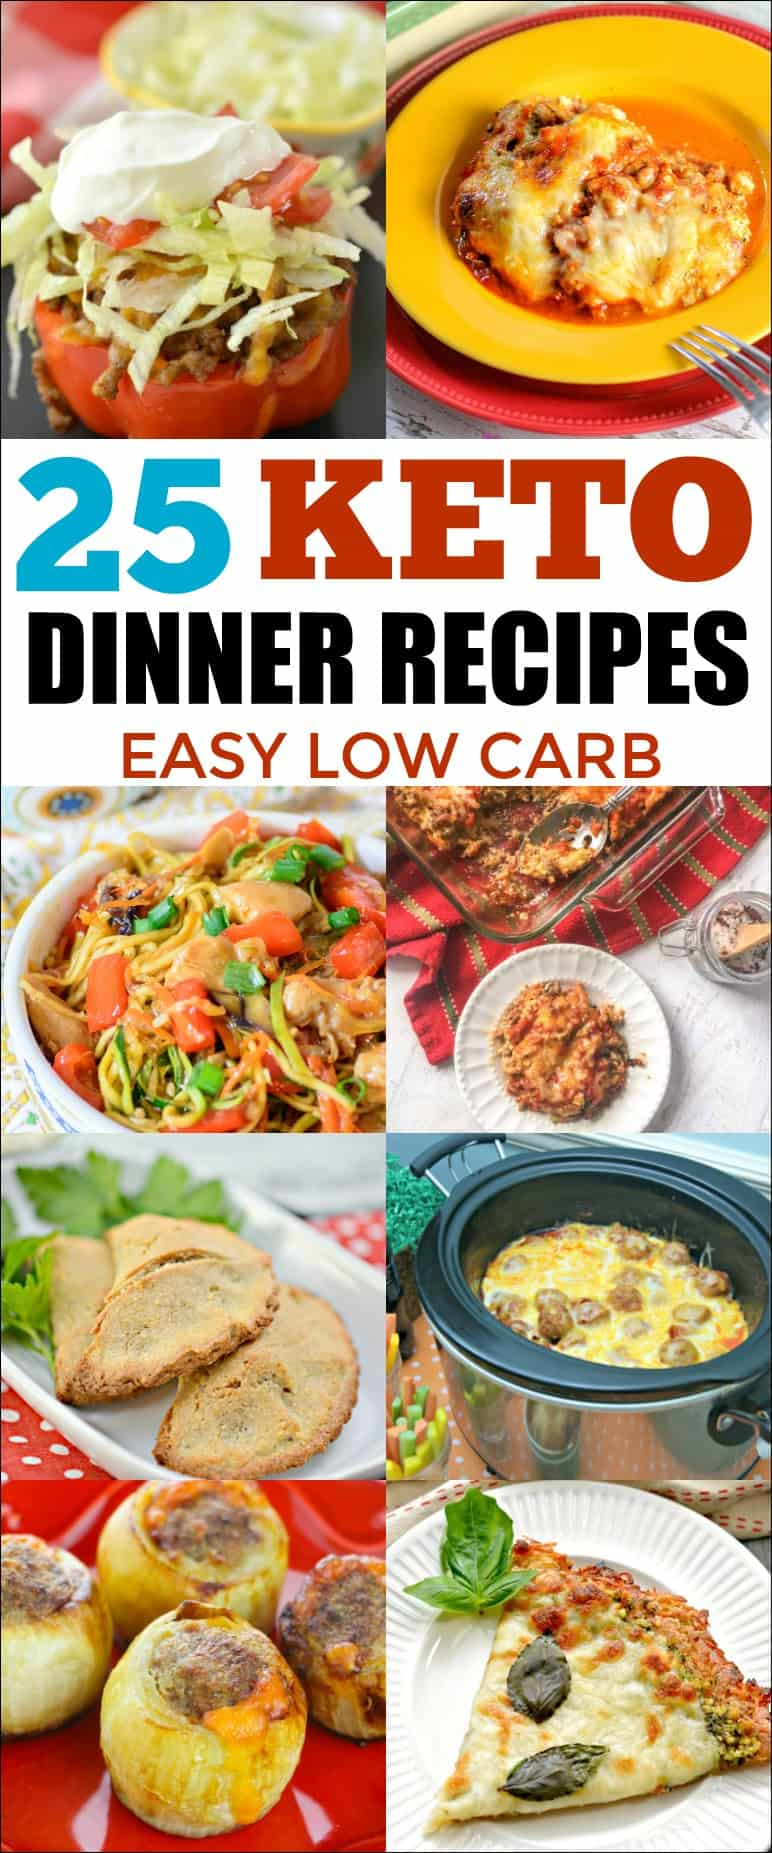 25 Best Keto Recipes for Dinner - If you are on a Keto diet, add some variety with these easy and delicious dinner recipes. #keto #lowcarb #ketorecipes